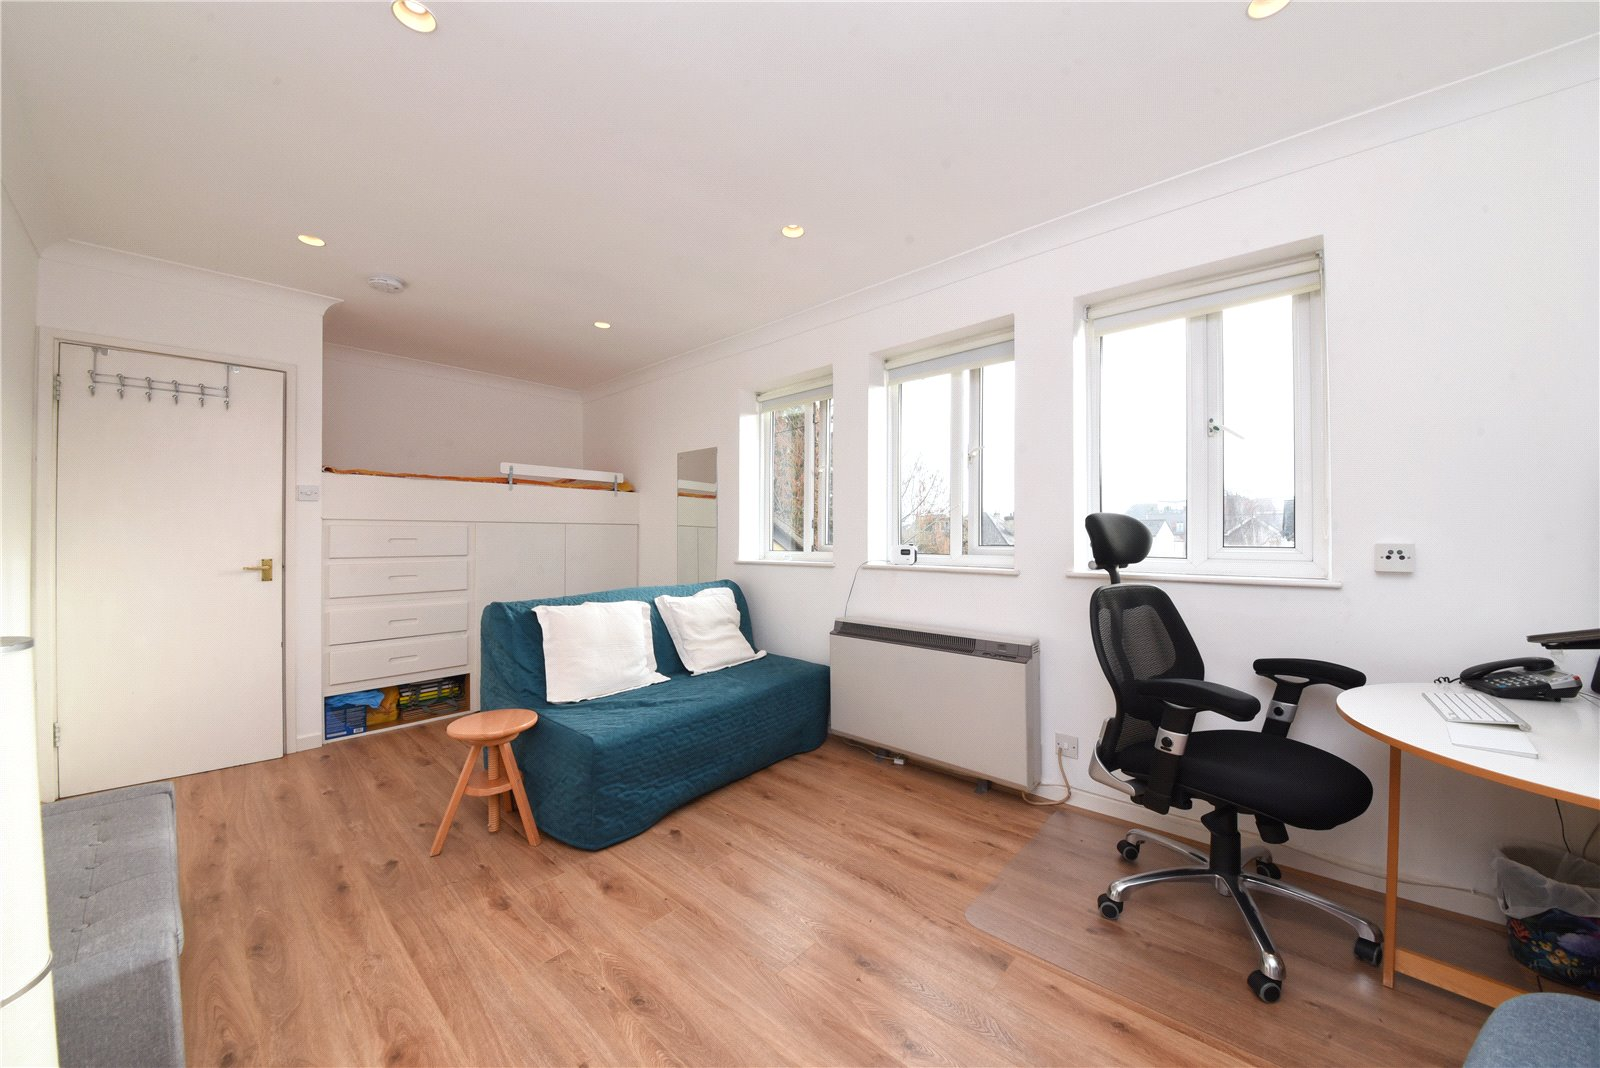 Apartment for sale in New Barnet, EN4 9PJ  - Property Image 5